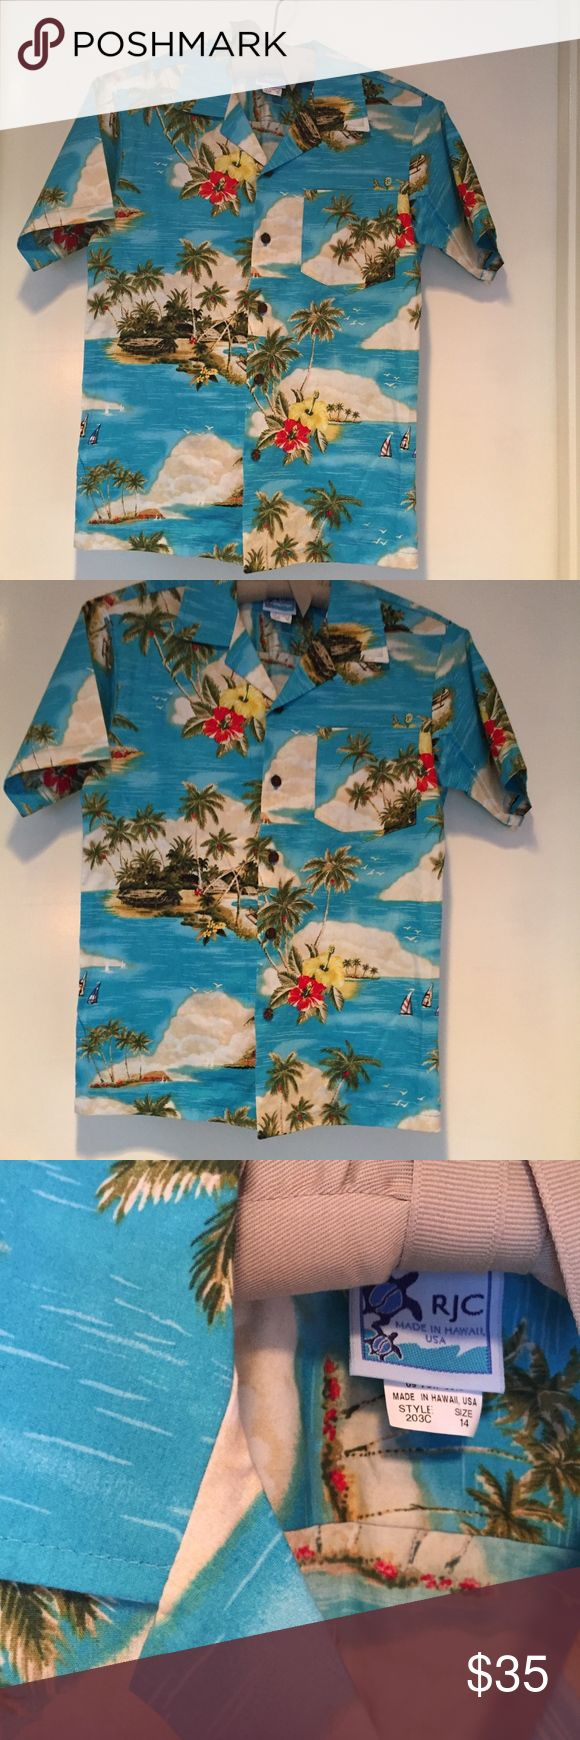 From Hawaii - Authentic RJC Hawaiian Print Shirt The coolest. From the big island, the one and only RJC Authentic Hawaiian shirt. Pure island swagger. RJC Shirts Casual Button Down Shirts